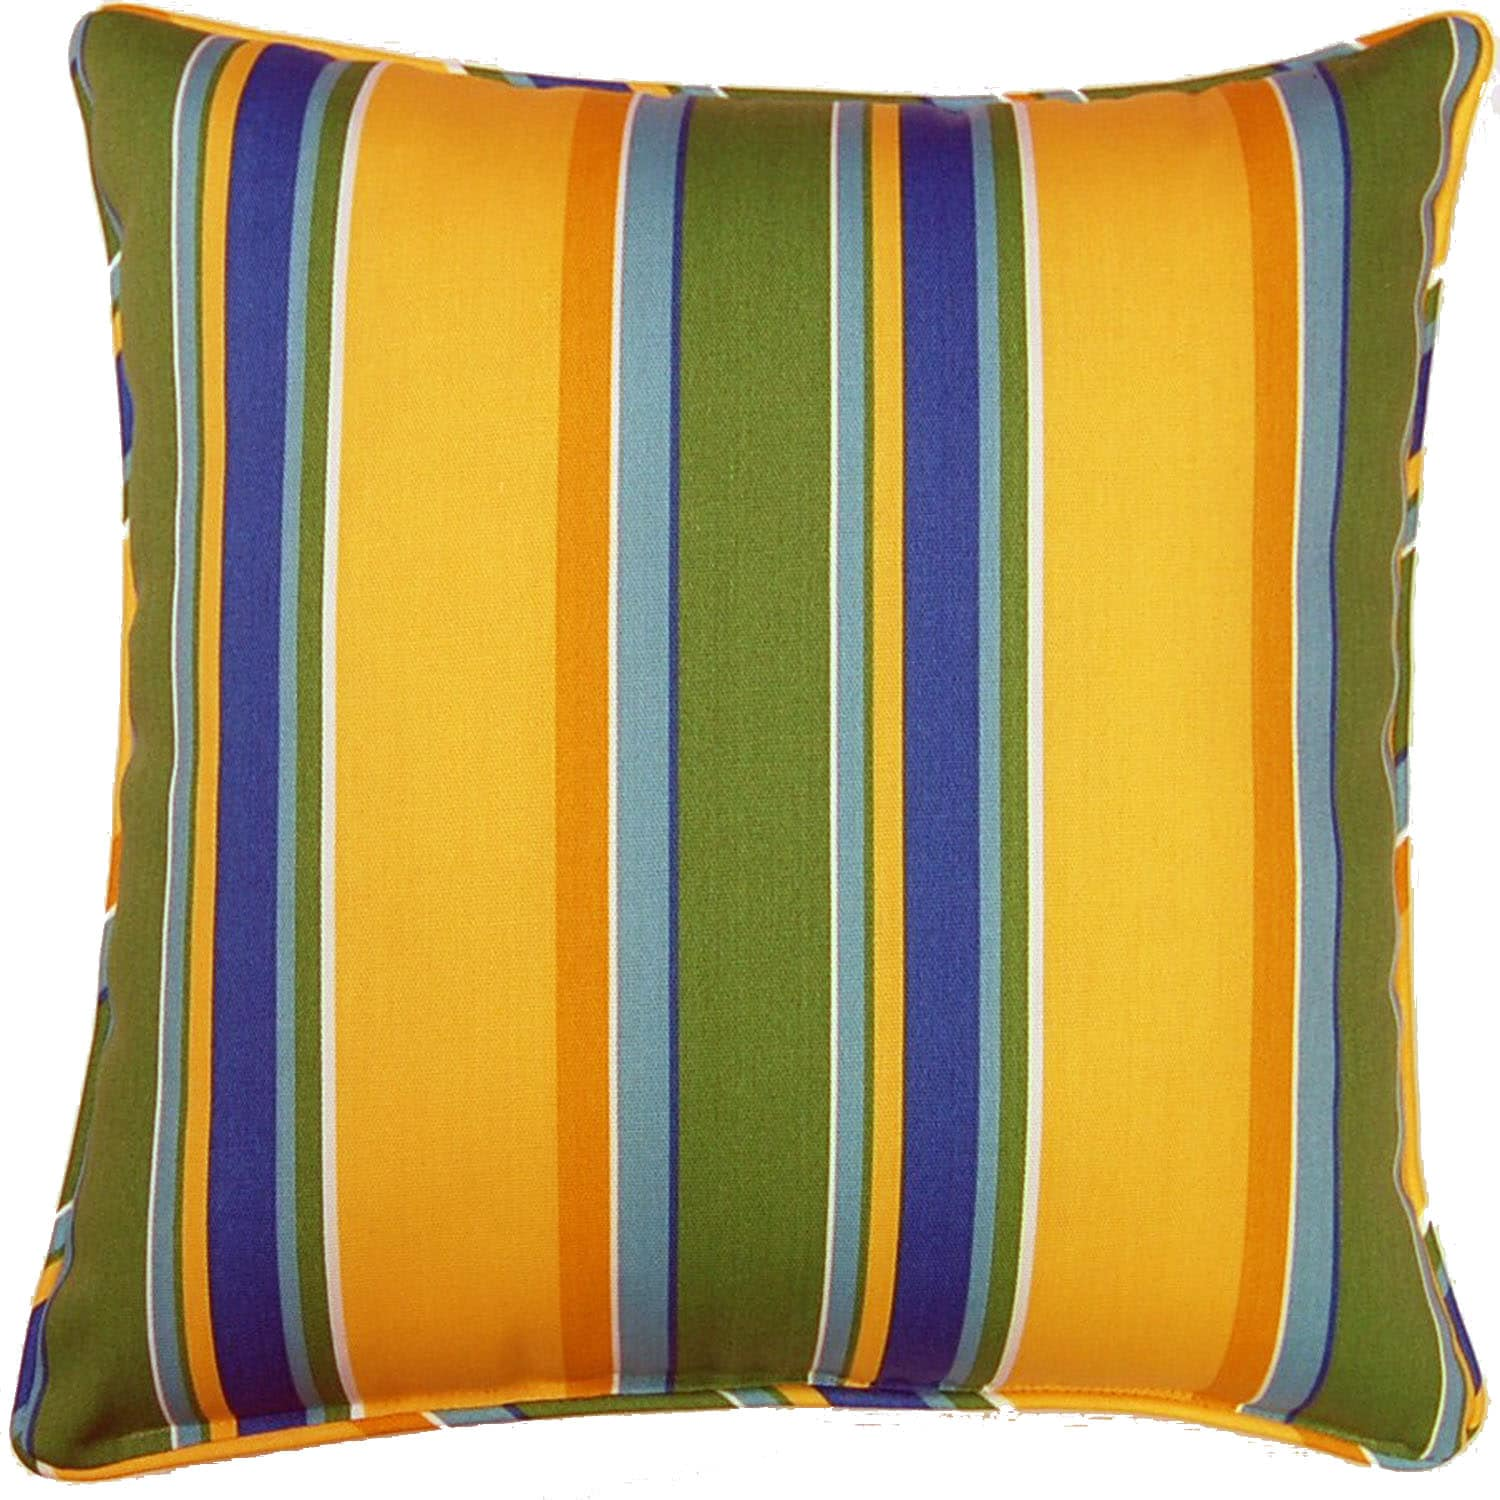 Acapulco Stripe Sunshine 26-inch Outdoor Pillow